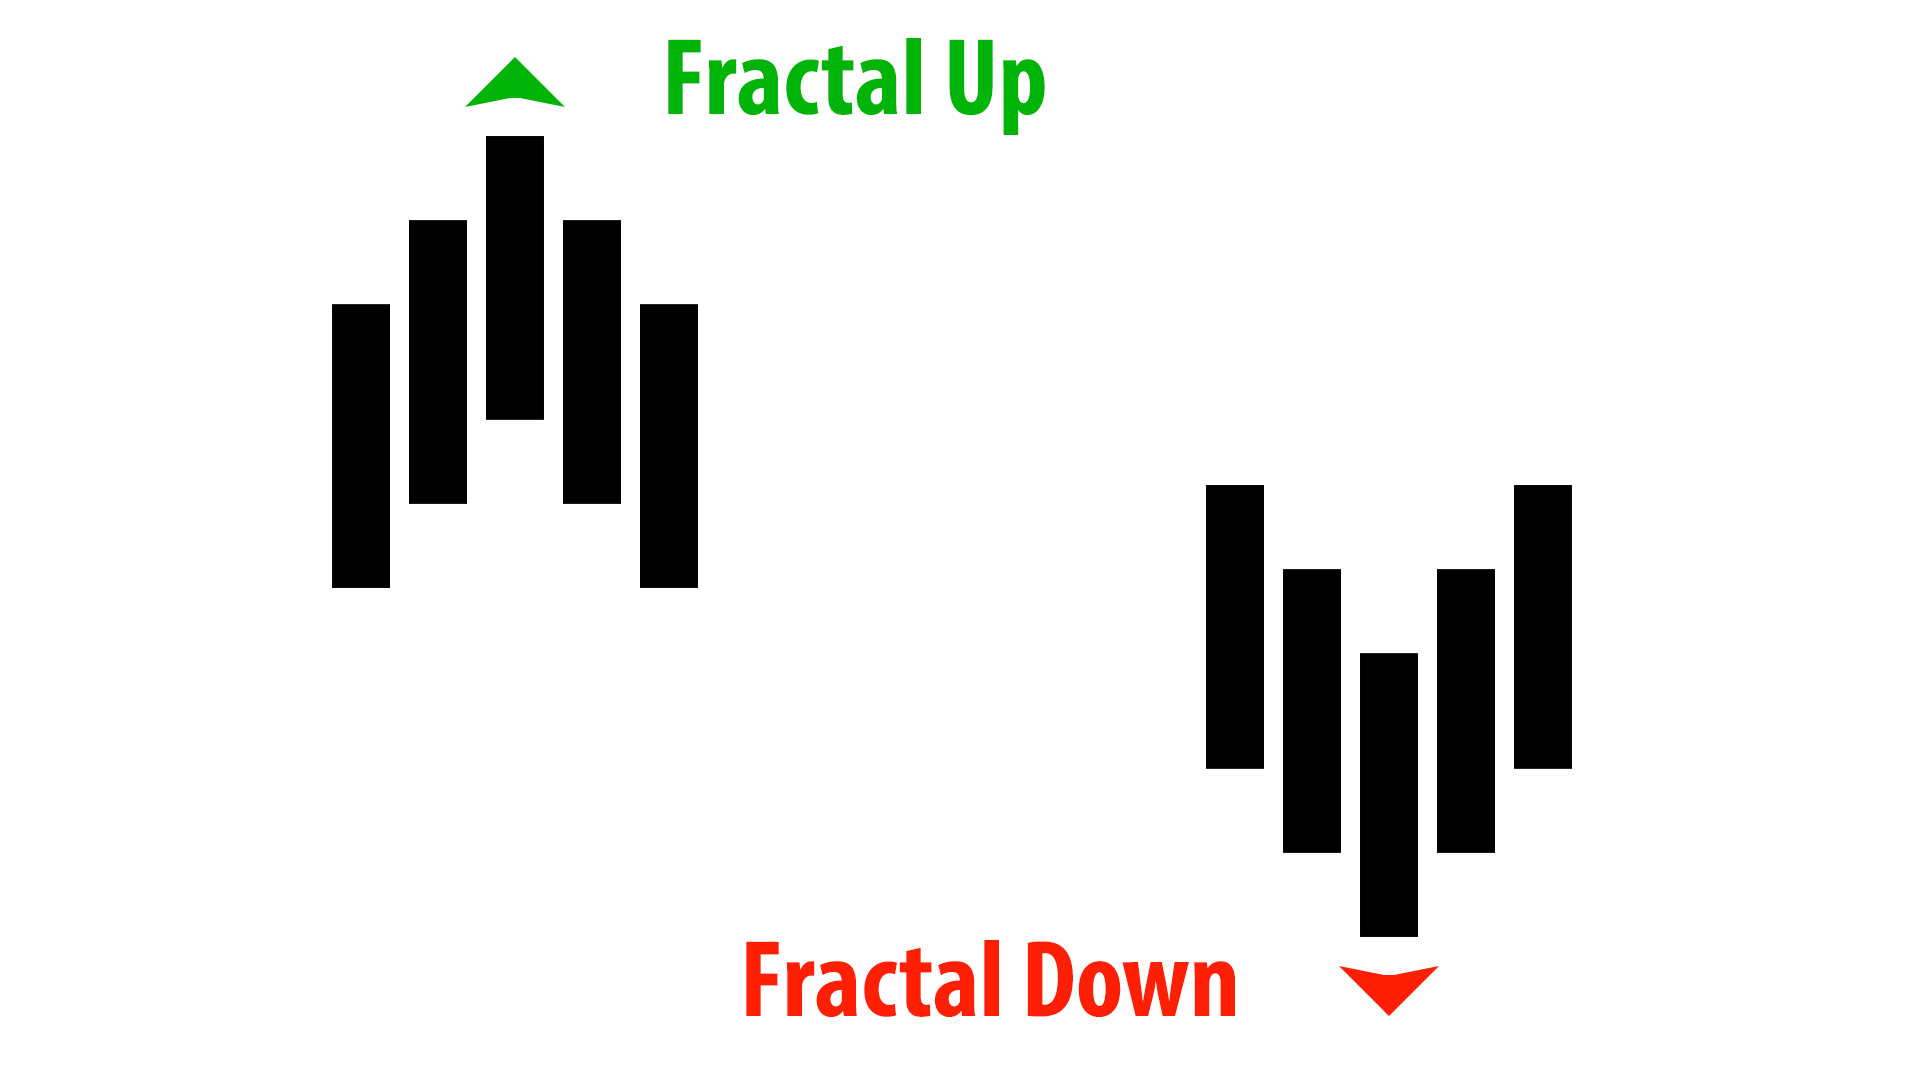 All about repainting and non repainting indicators in forex fractals movements fandeluxe Gallery